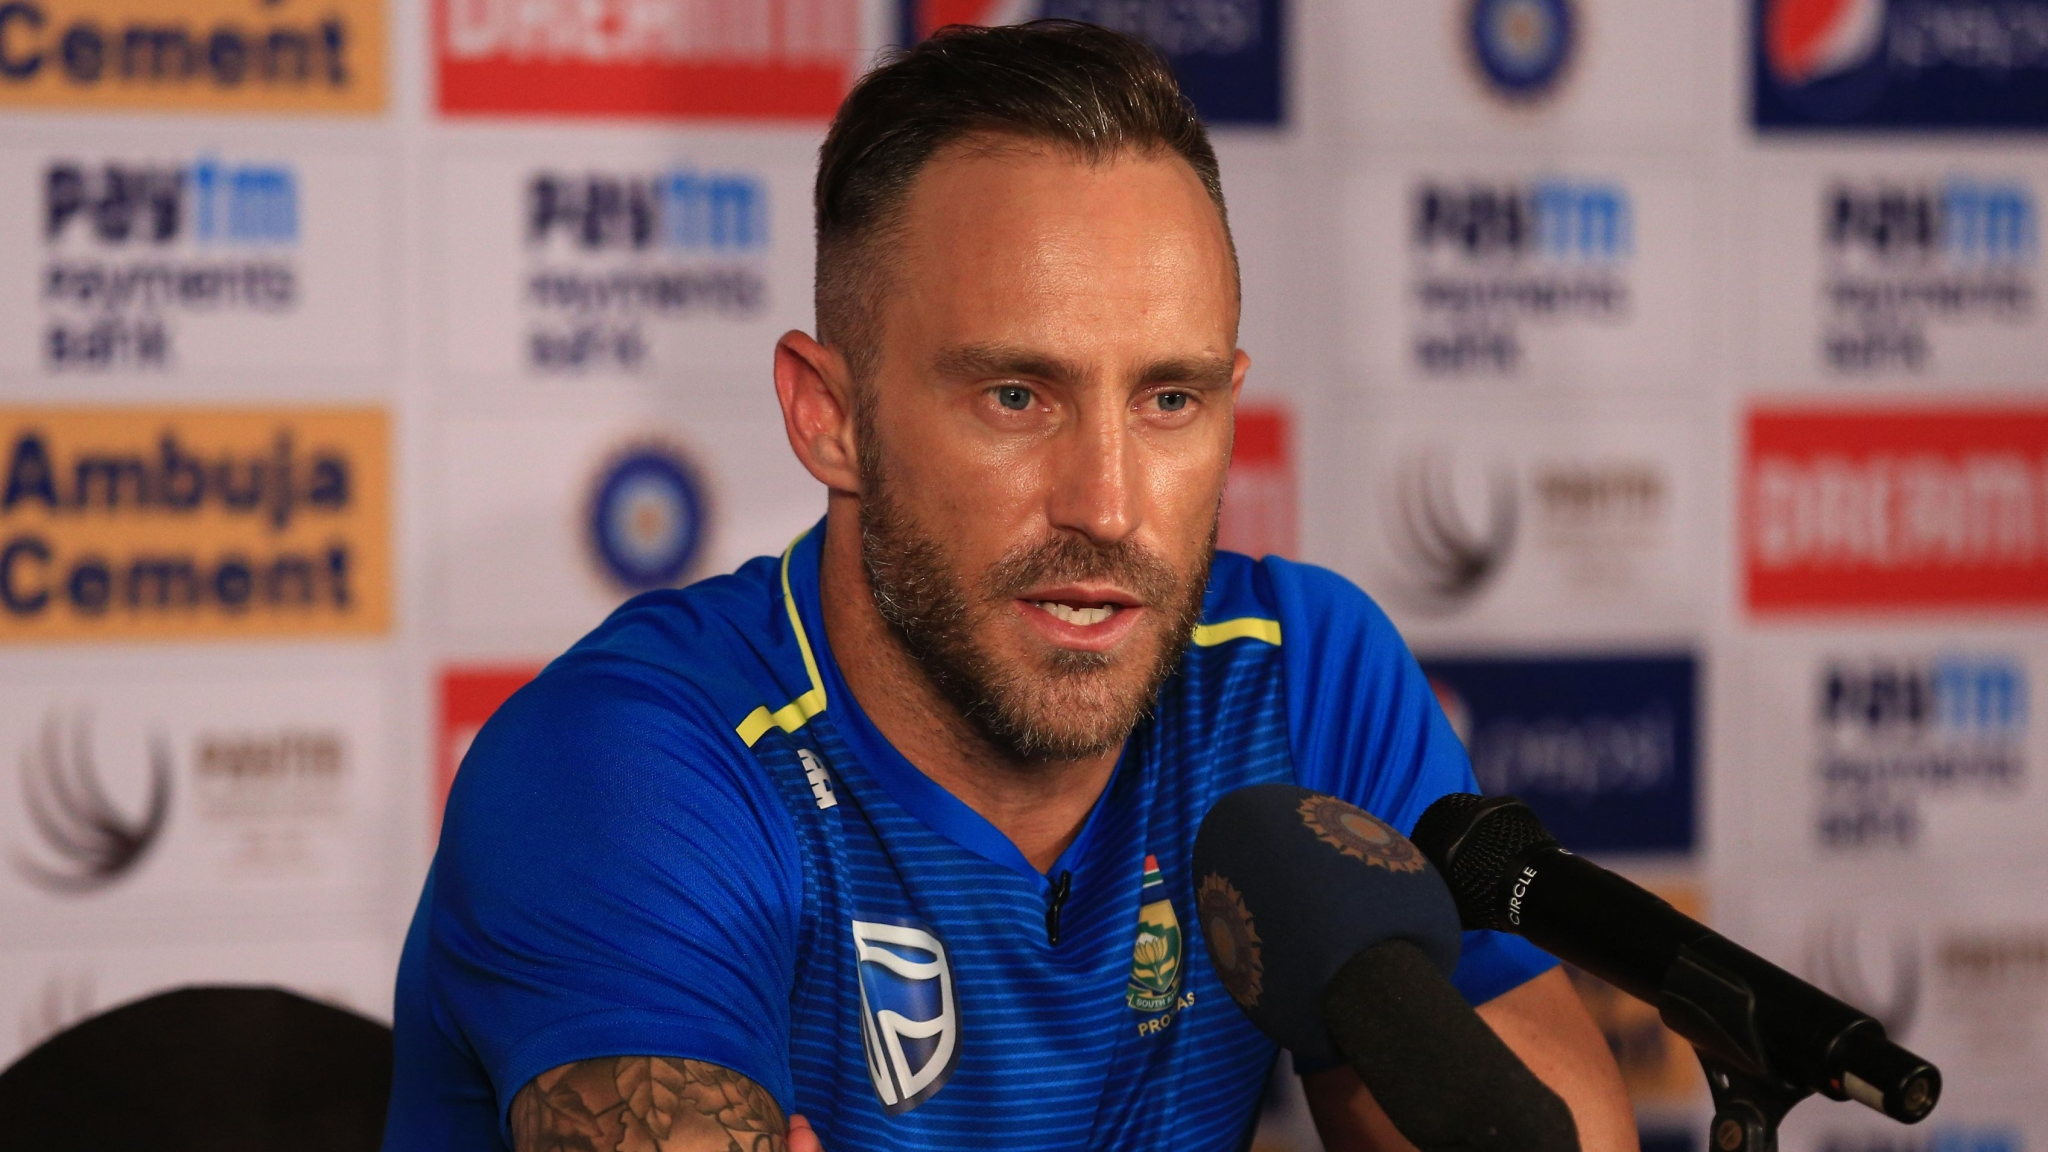 Faf du Plessis Blames Lack of Experience in Side After Series Loss